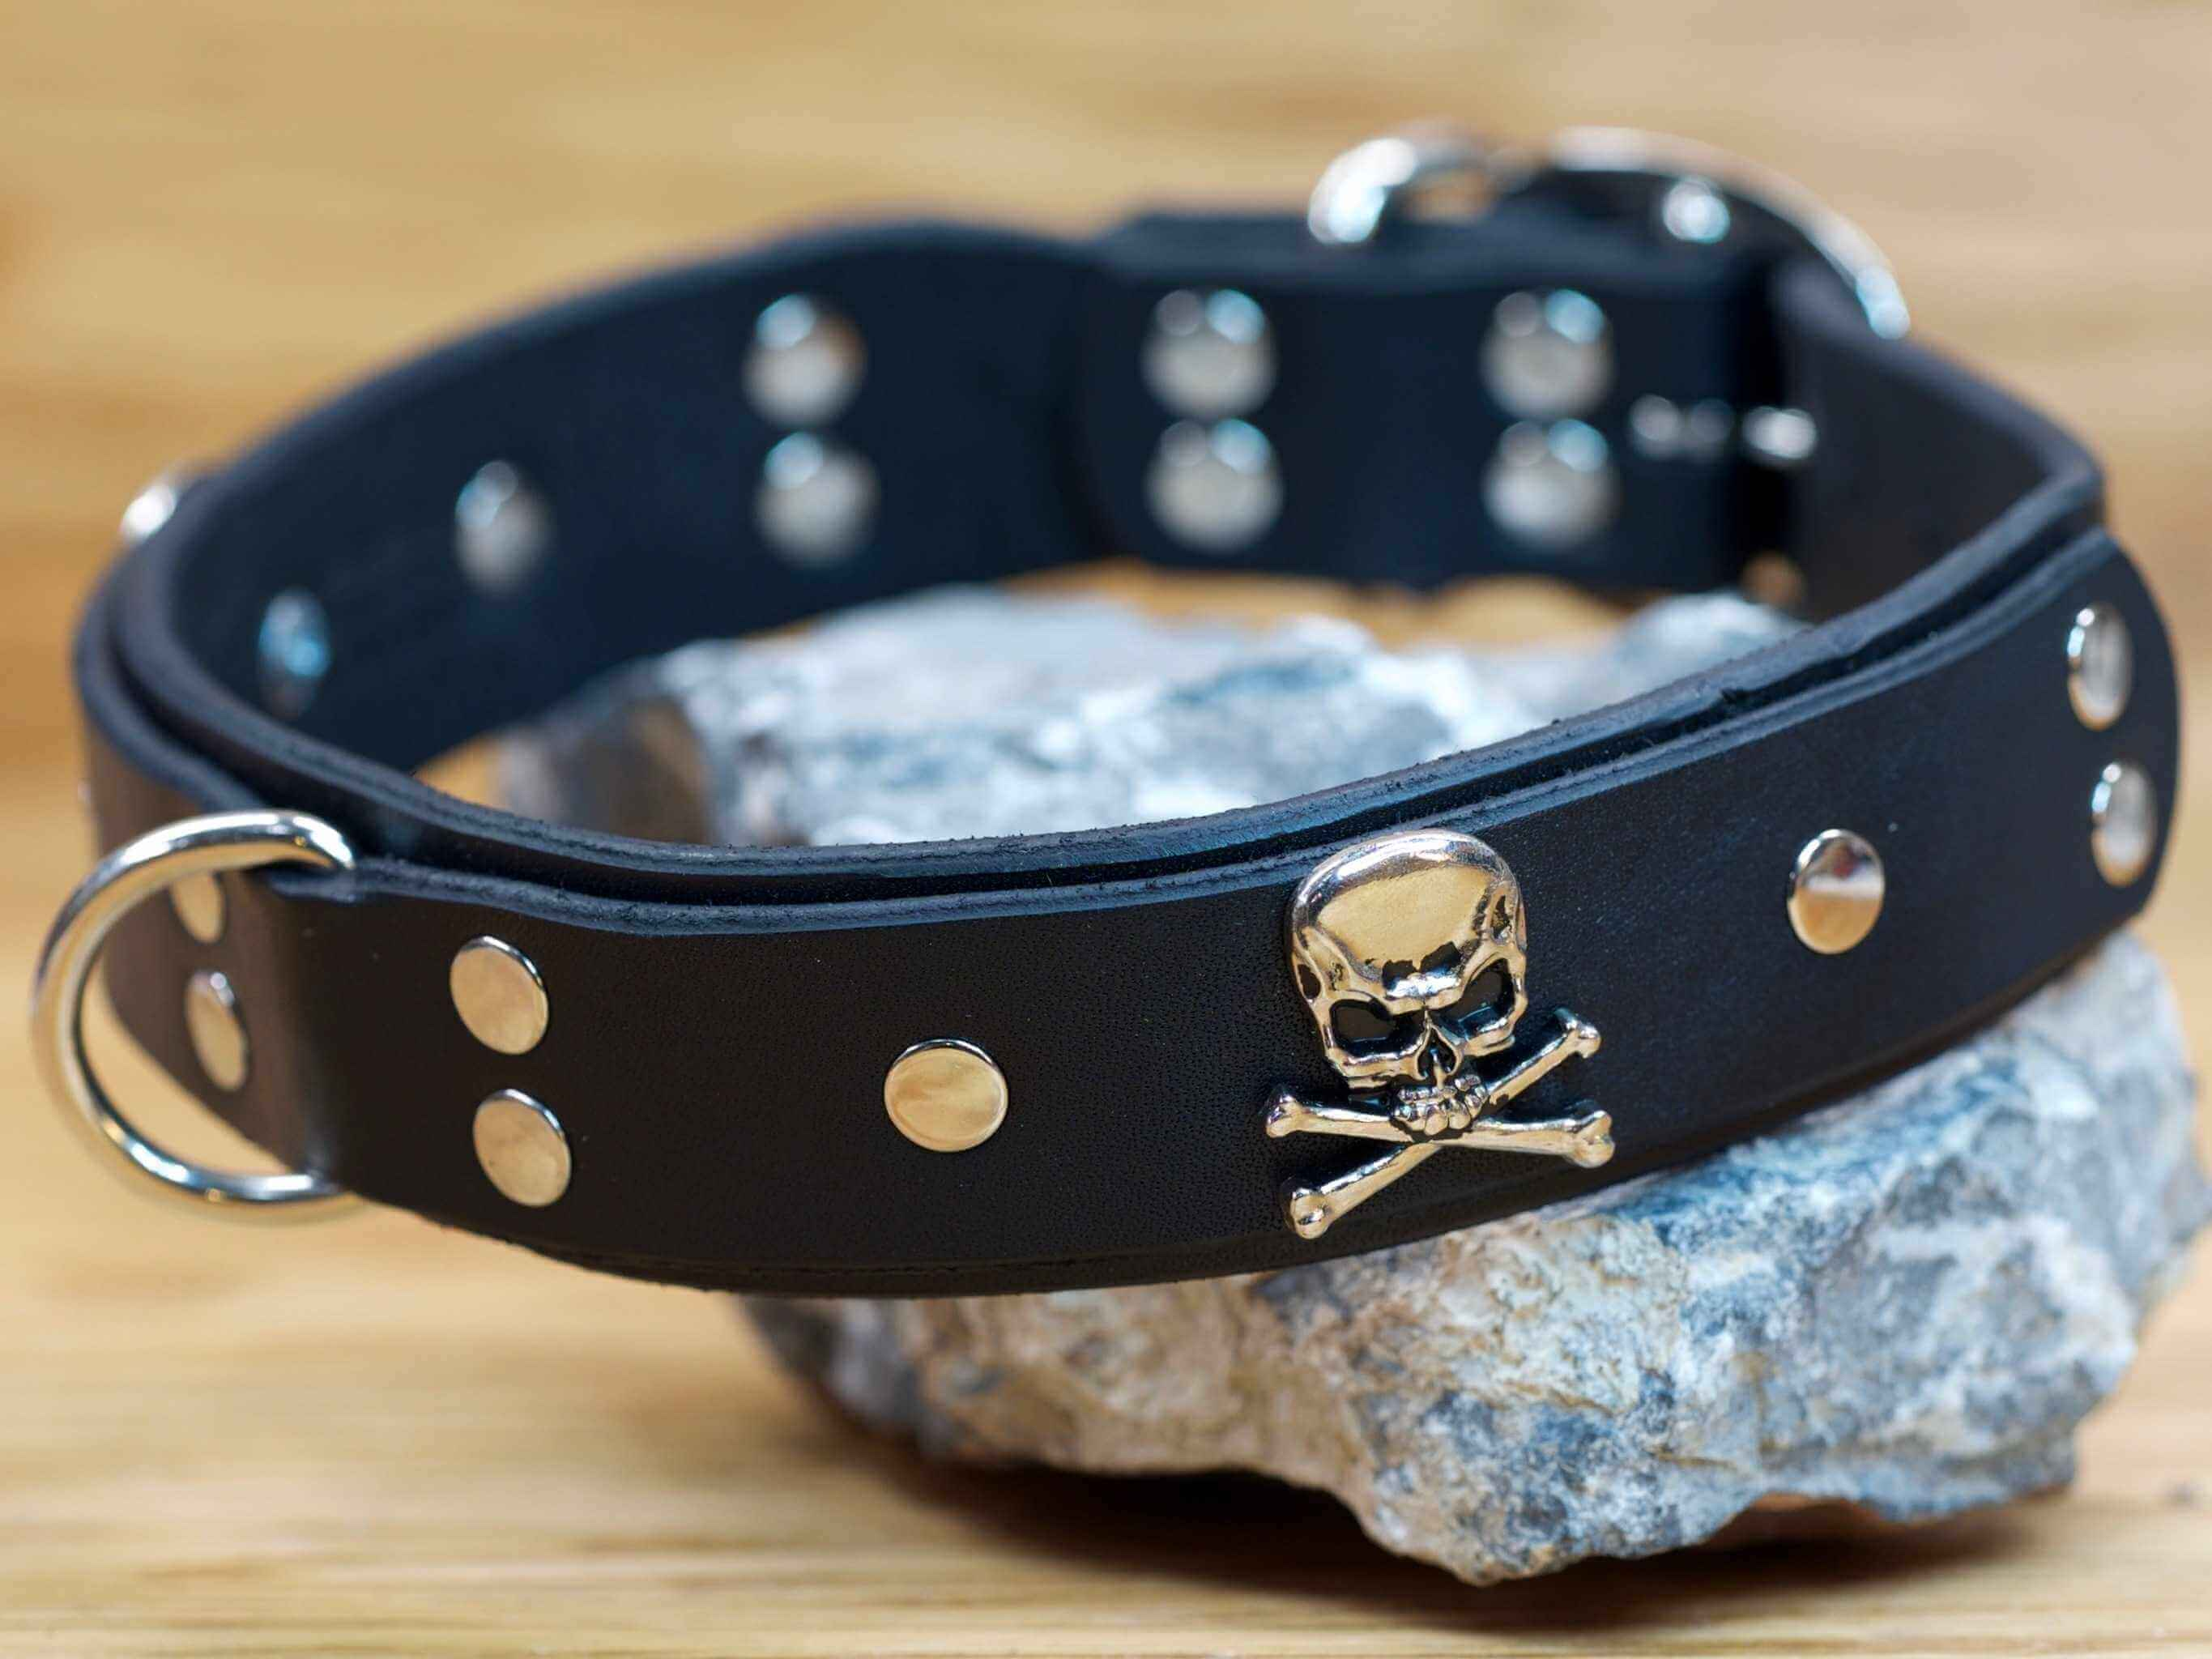 The perfect dog collar for the biker, or bad boy/girl